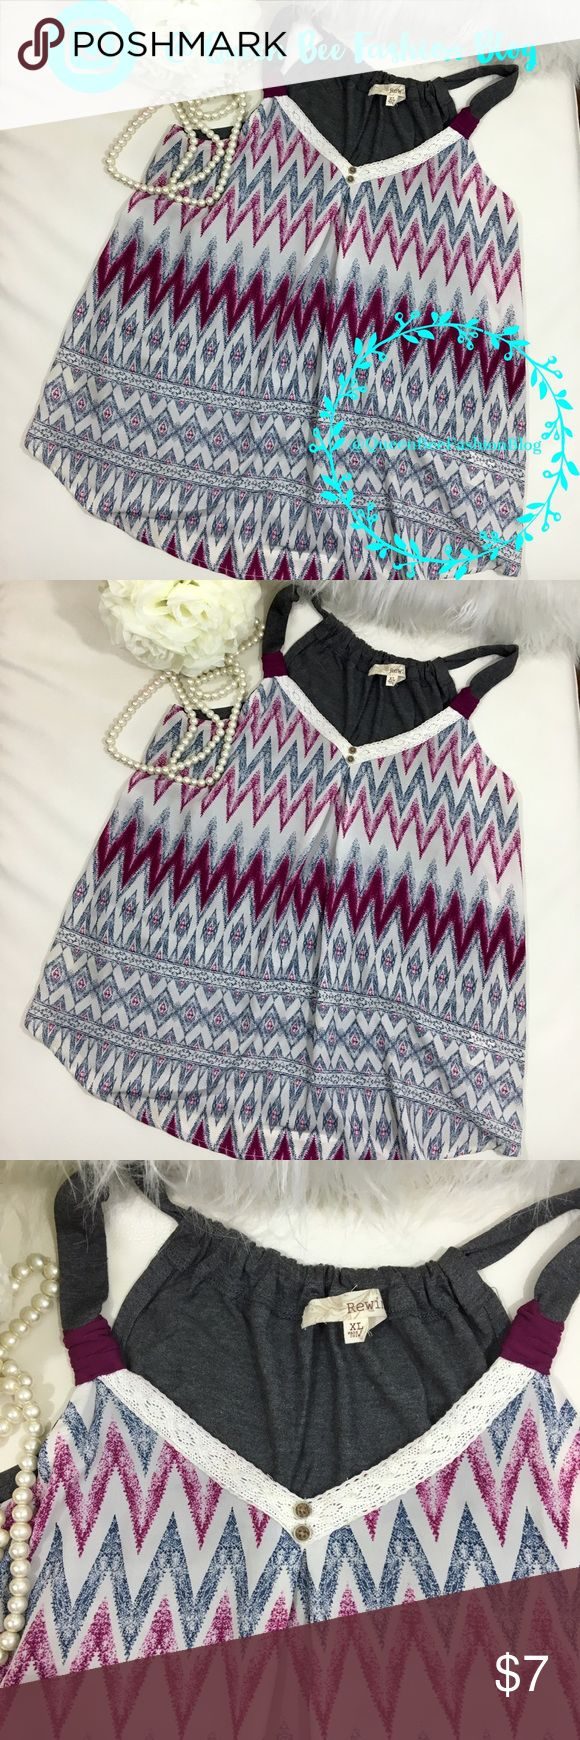 """🎀 WOMENS TANK TOP SLEEVELESS SHIRT BLOUSE Really cute chevron print. Excellent condition. Size XL bust: 38"""" length: 14"""".    🎀""""Add to bundle"""" to add more items from my closet or """"Buy"""" to checkout now.  🎀Get to know me! 💗Showing you how to style your looks at www.Queenbeefashionblog.com SUBSCRIBE.   🎀 Let's be friends! Follow me on Instagram @queenbeefashionblog Tops Blouses"""